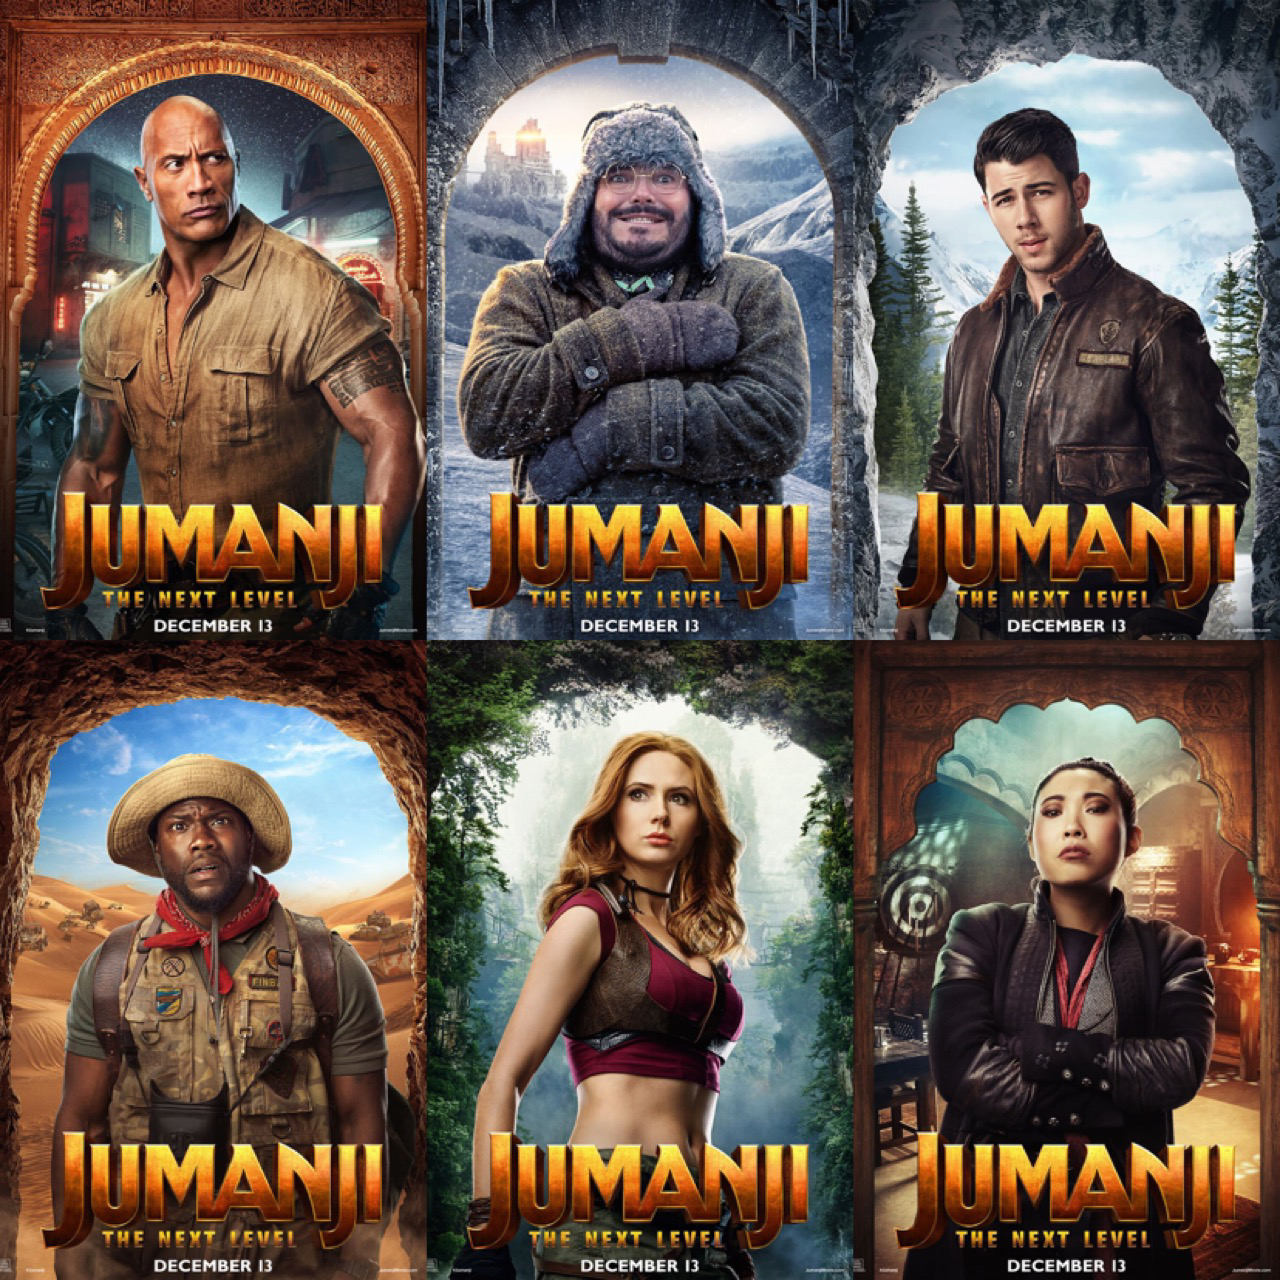 Movies Jumanji The Next Level Character Posters In 2020 Jumanji Movie Good Movies Welcome To The Jungle